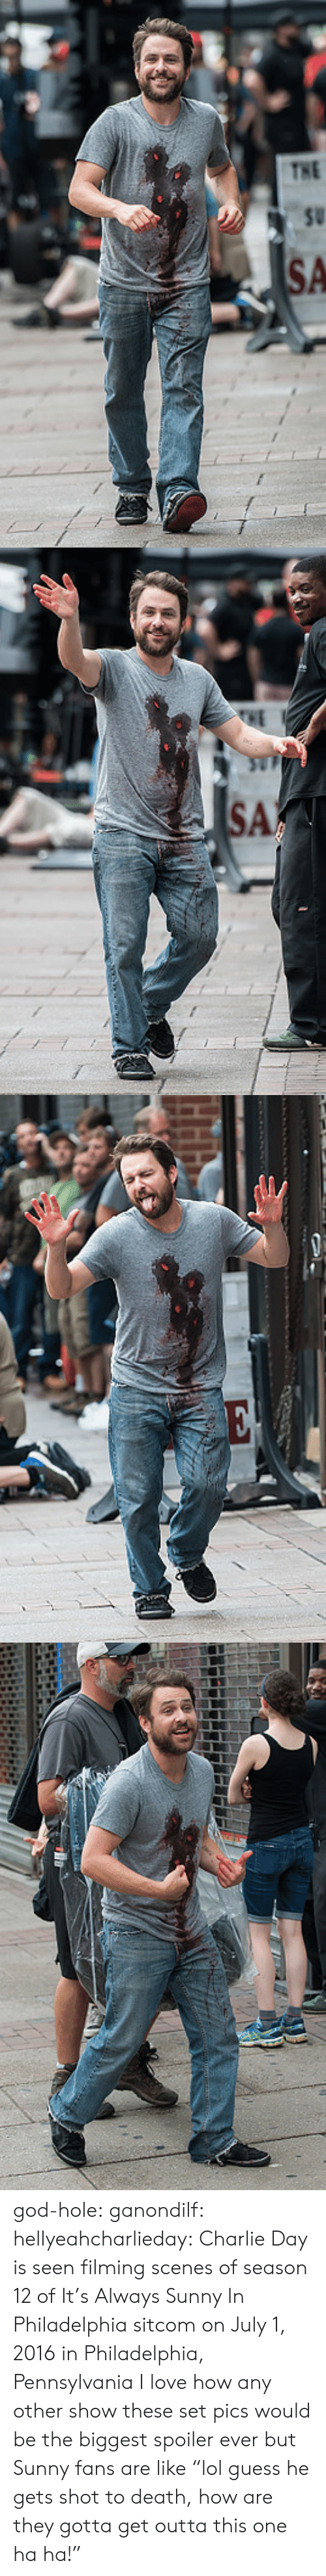 "Charlie, God, and Love: god-hole:  ganondilf:  hellyeahcharlieday:  Charlie Day is seen filming scenes of season 12 of It's Always Sunny In Philadelphia sitcom on July 1, 2016 in Philadelphia, Pennsylvania  I love how any other show these set pics would be the biggest spoiler ever but Sunny fans are like ""lol guess he gets shot to death, how are they gotta get outta this one ha ha!"""